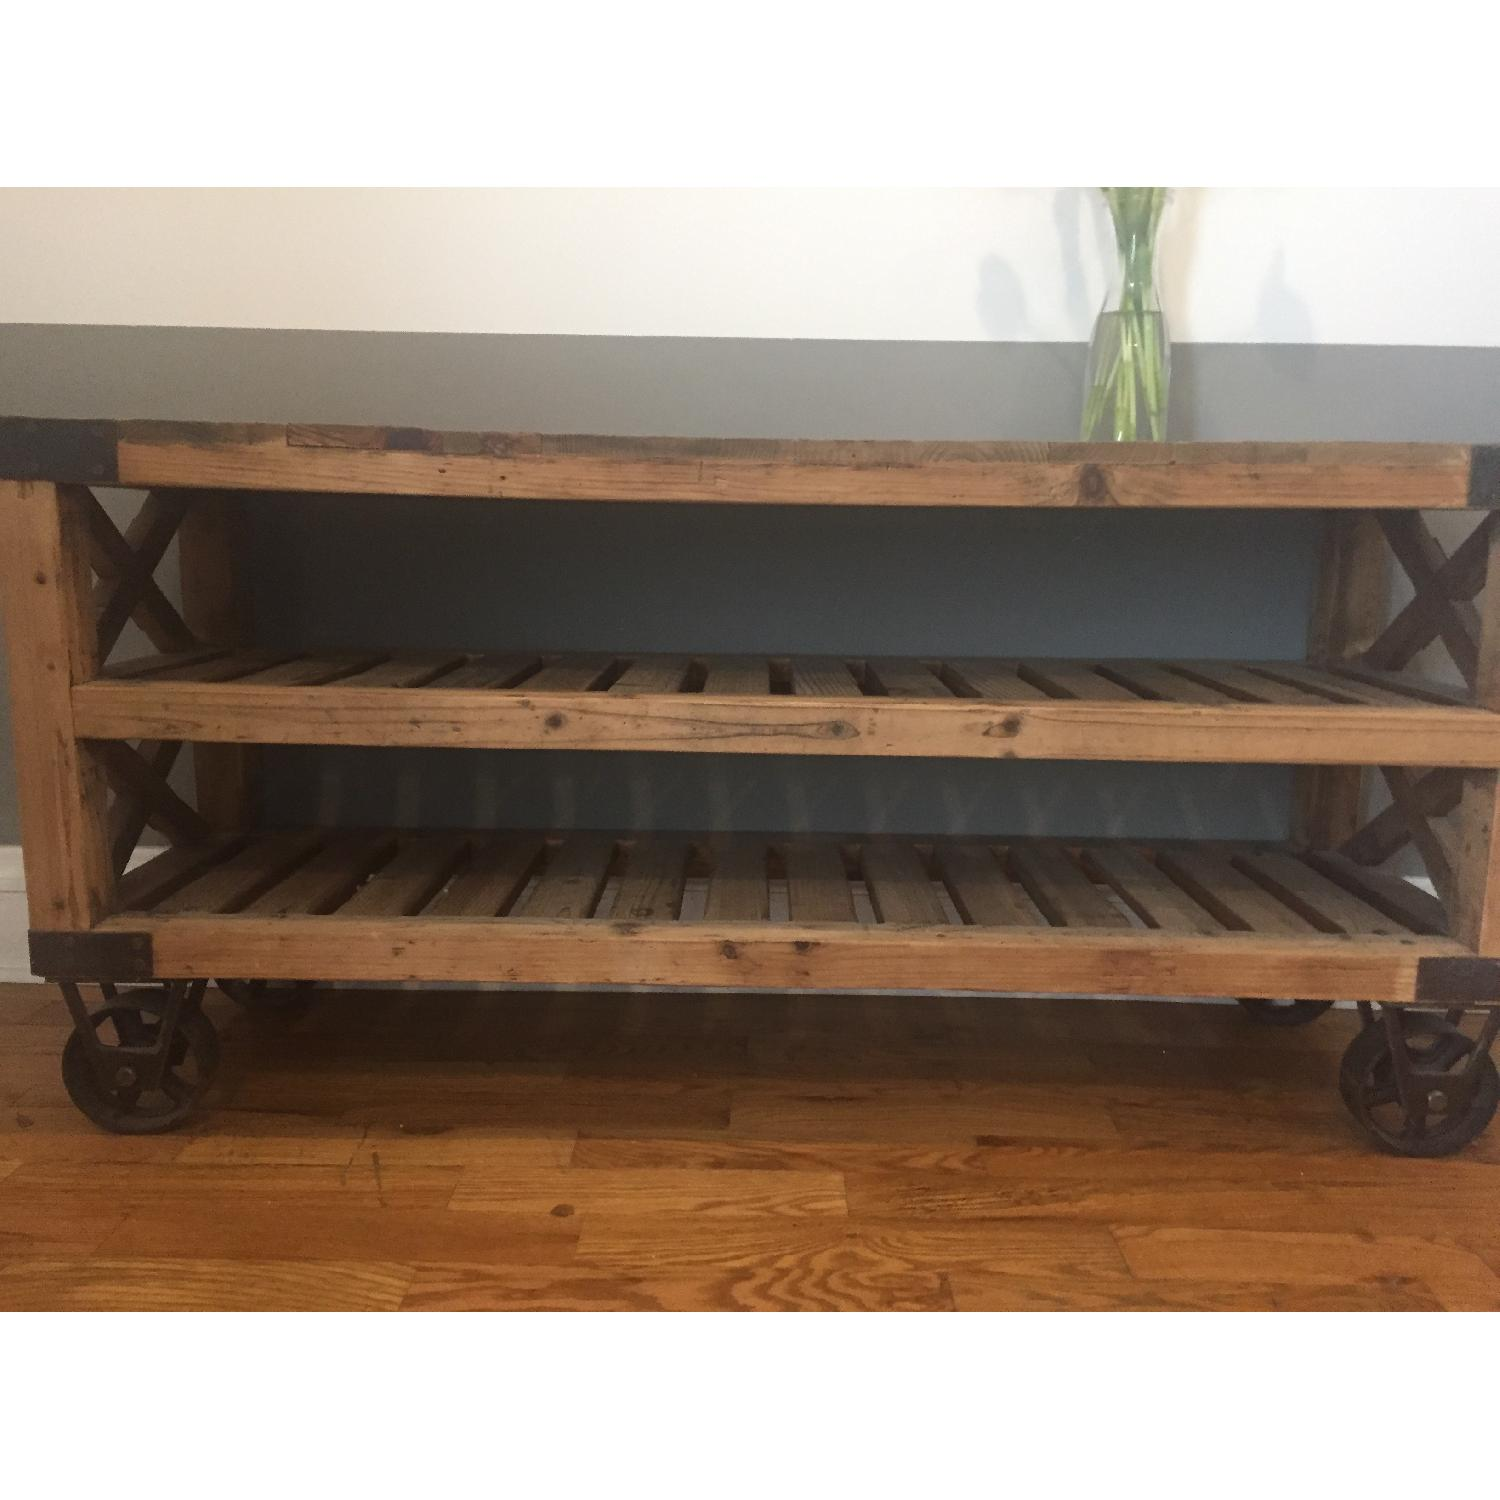 Industrial Style Rolling Shelves - image-2